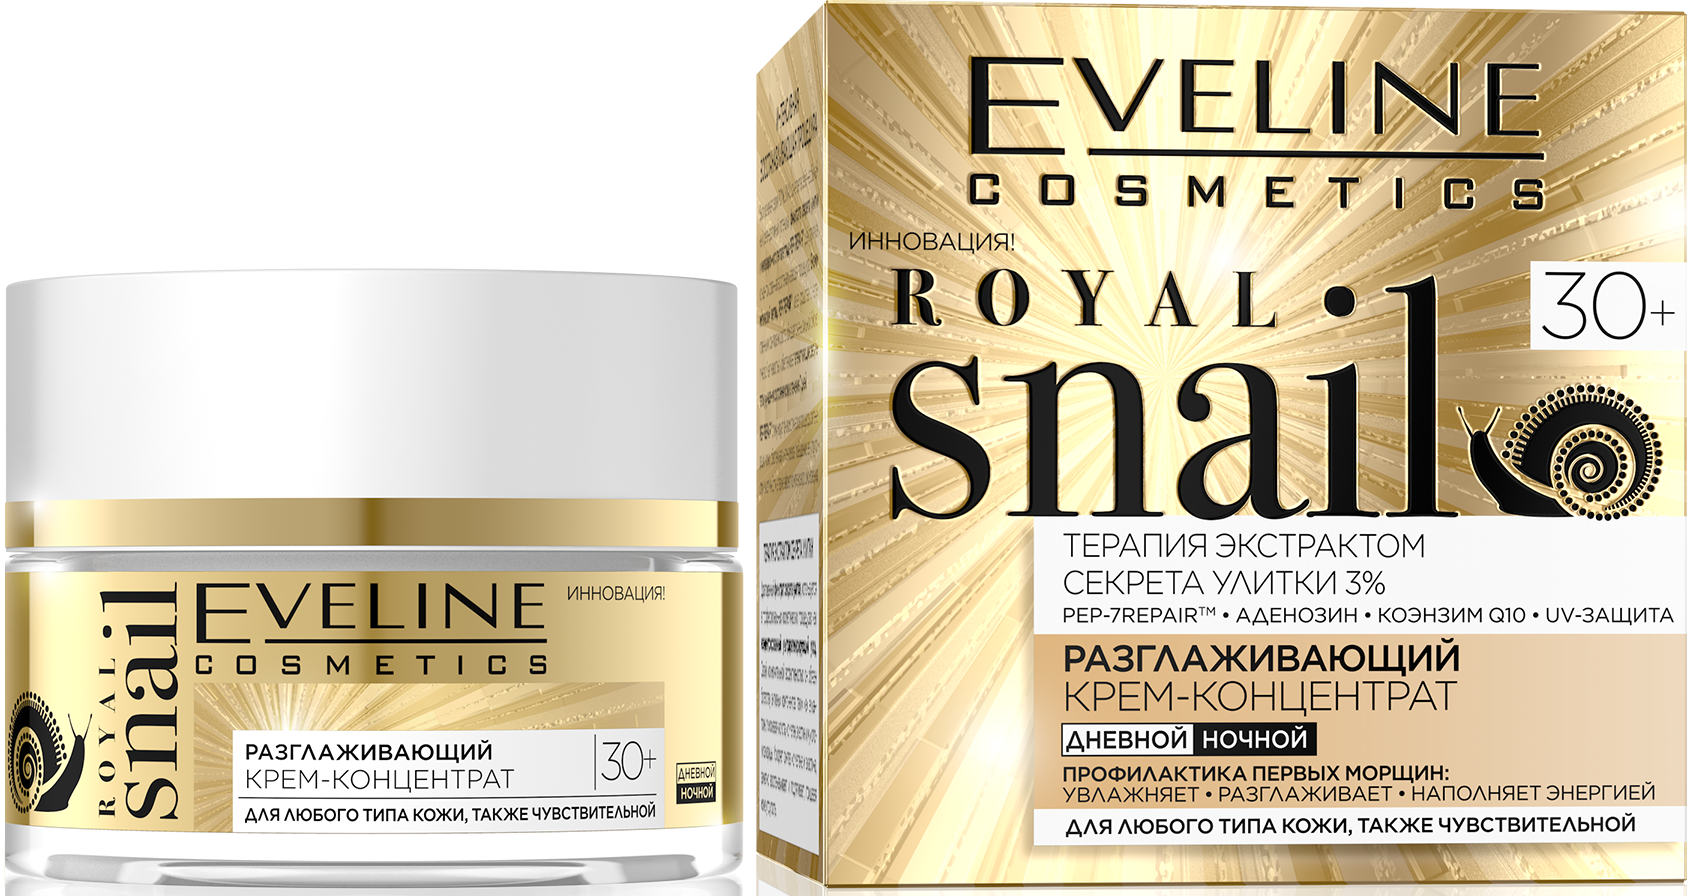 Smoothing cream concentrate 30+ for all skin types, also sensitive series royal snail, Avon, 50 ml